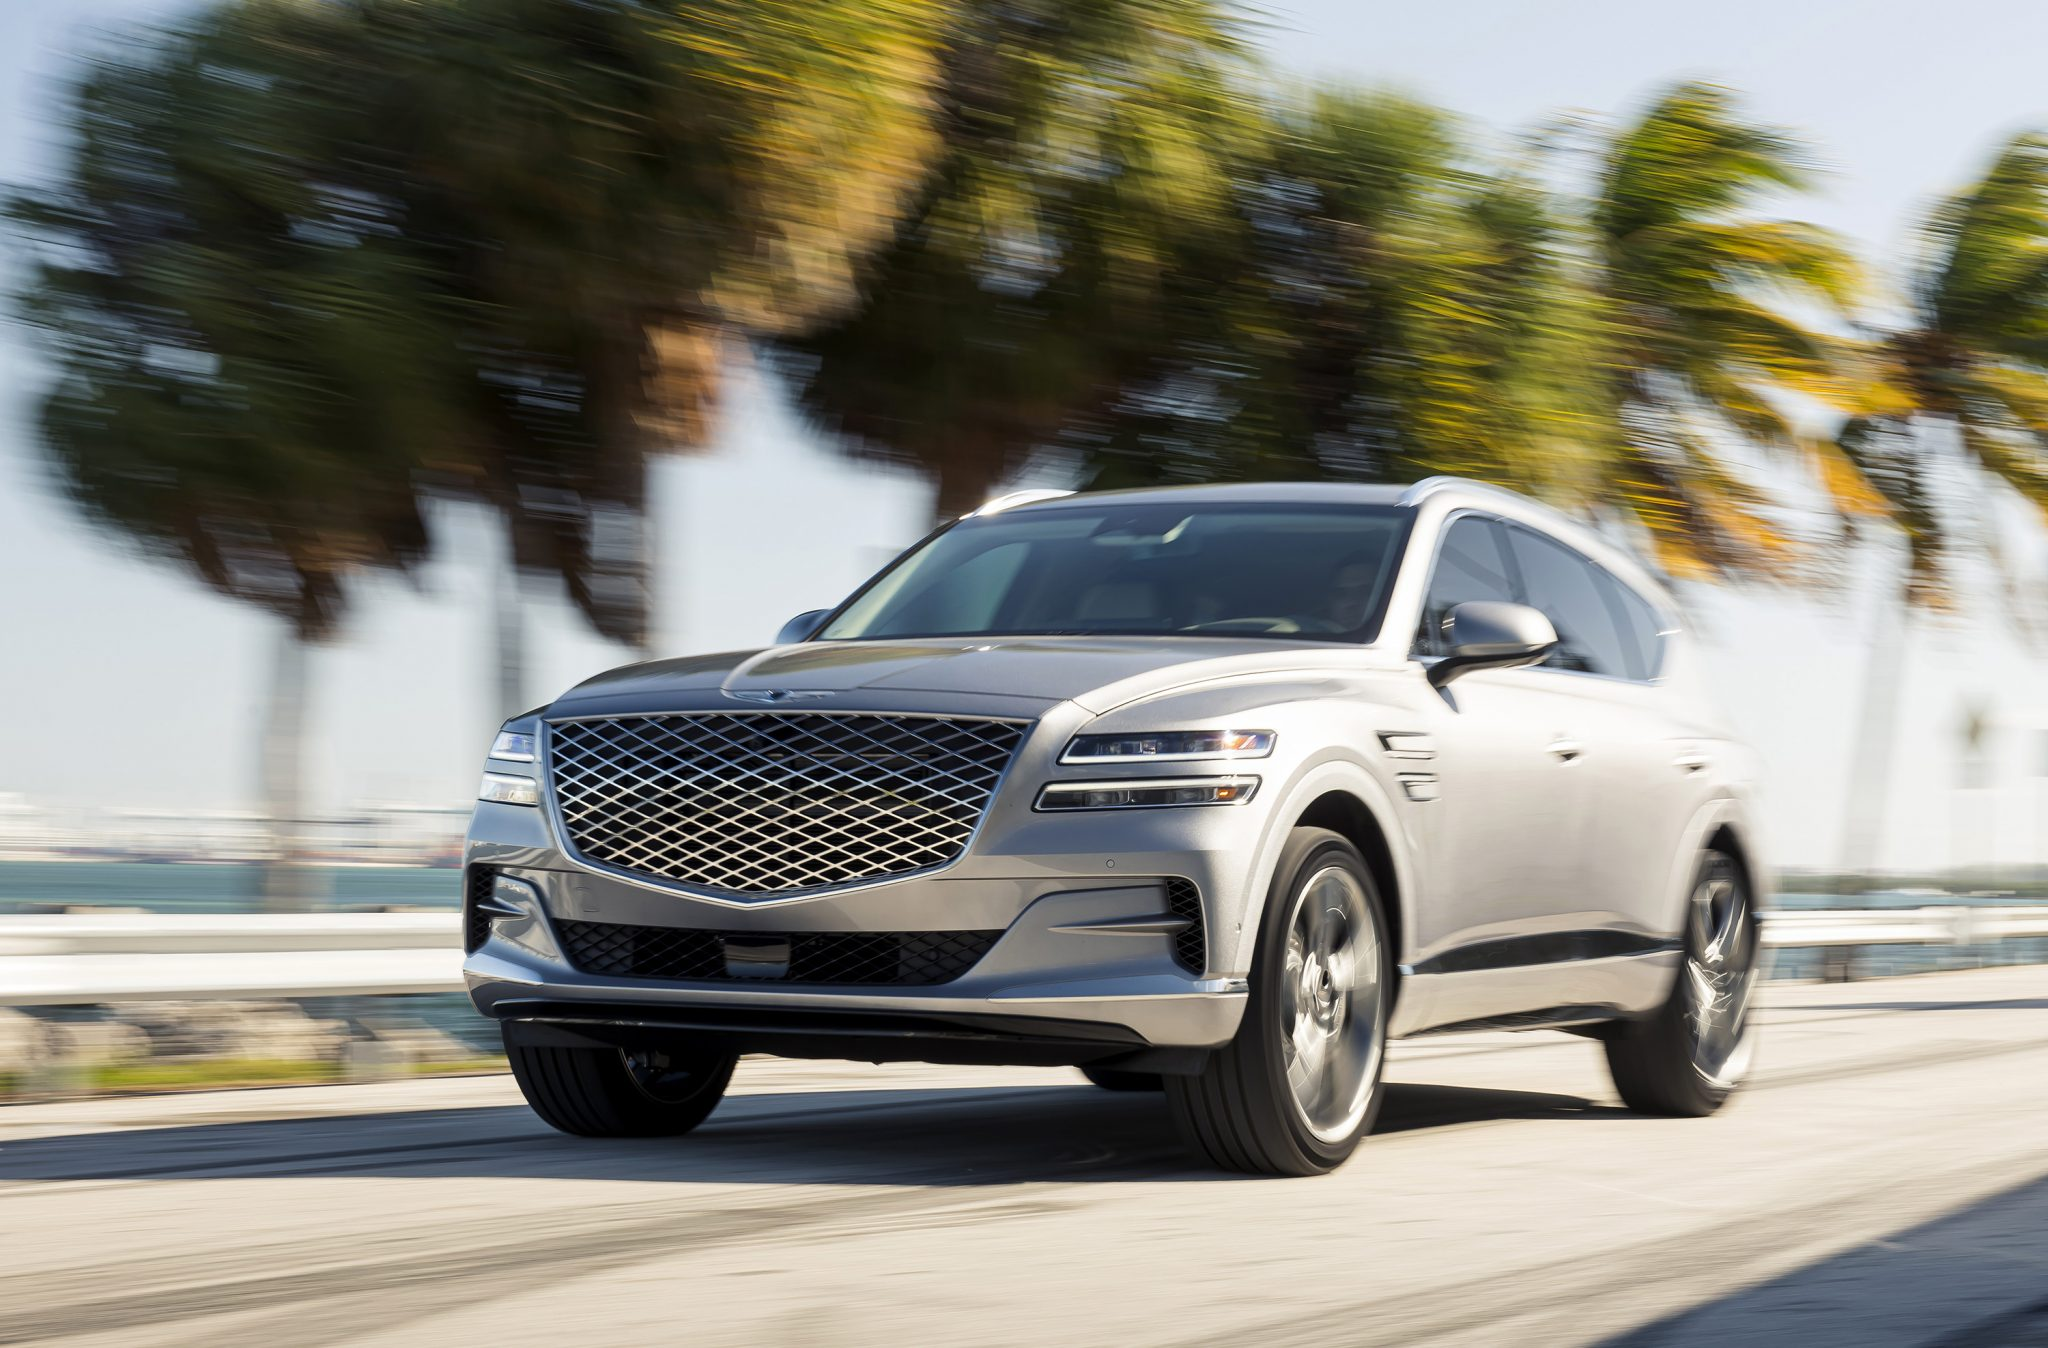 NEW GENESIS GV80 SHOWS THE WAY FOR LUXURY SUVS